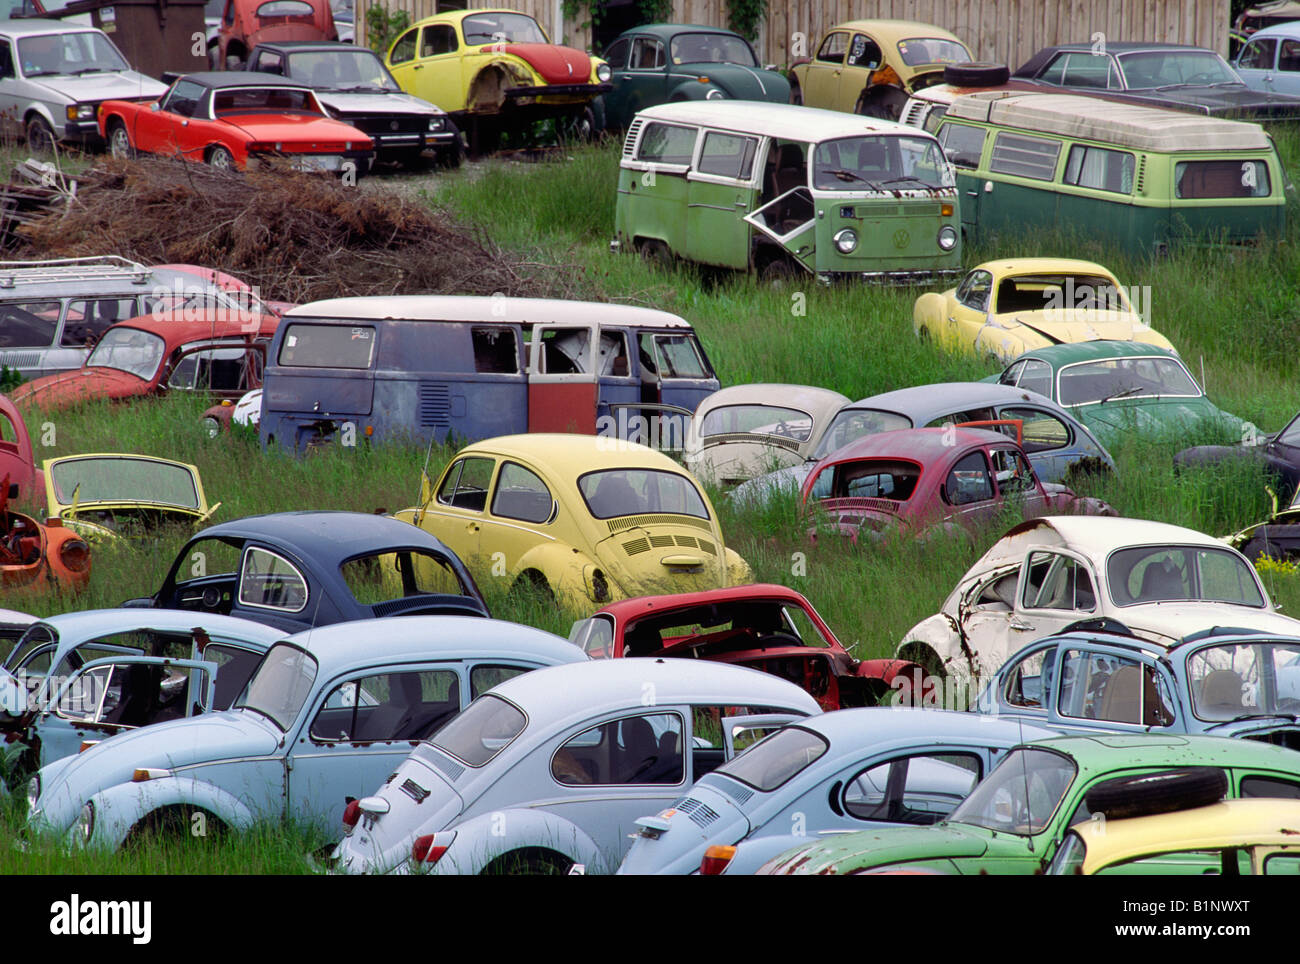 Volkswagen Junk Yard Stock Photo, Royalty Free Image